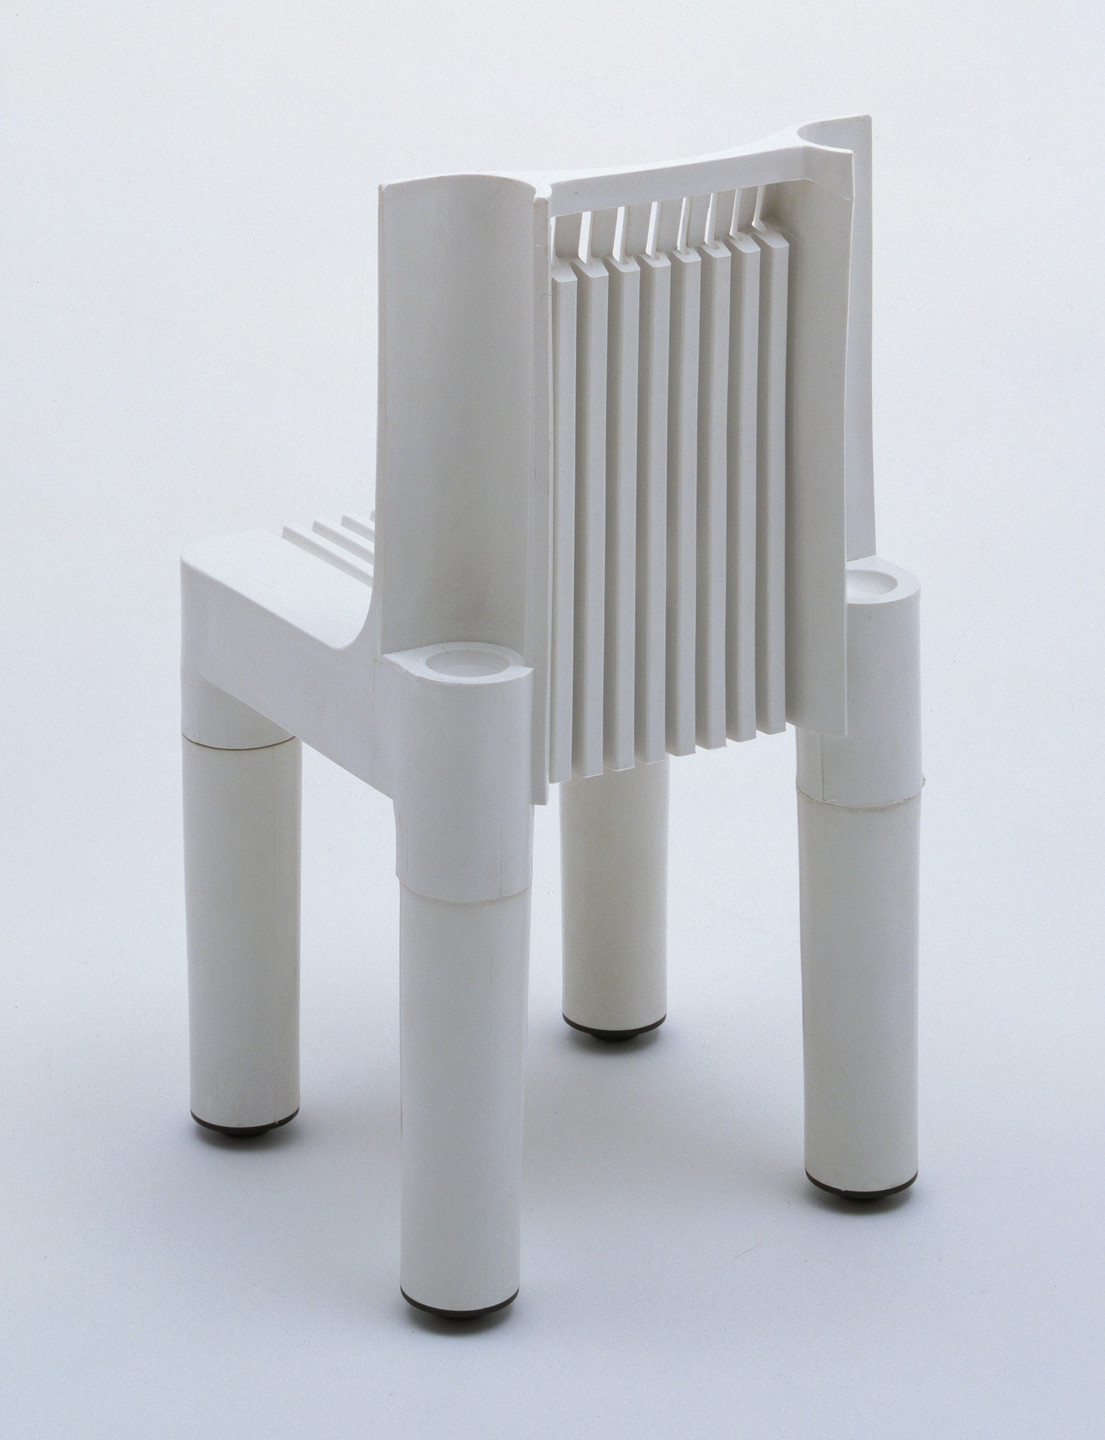 Marco Zanuso, Richard Sapper. Children's Chairs (model K4999). 1960–1964